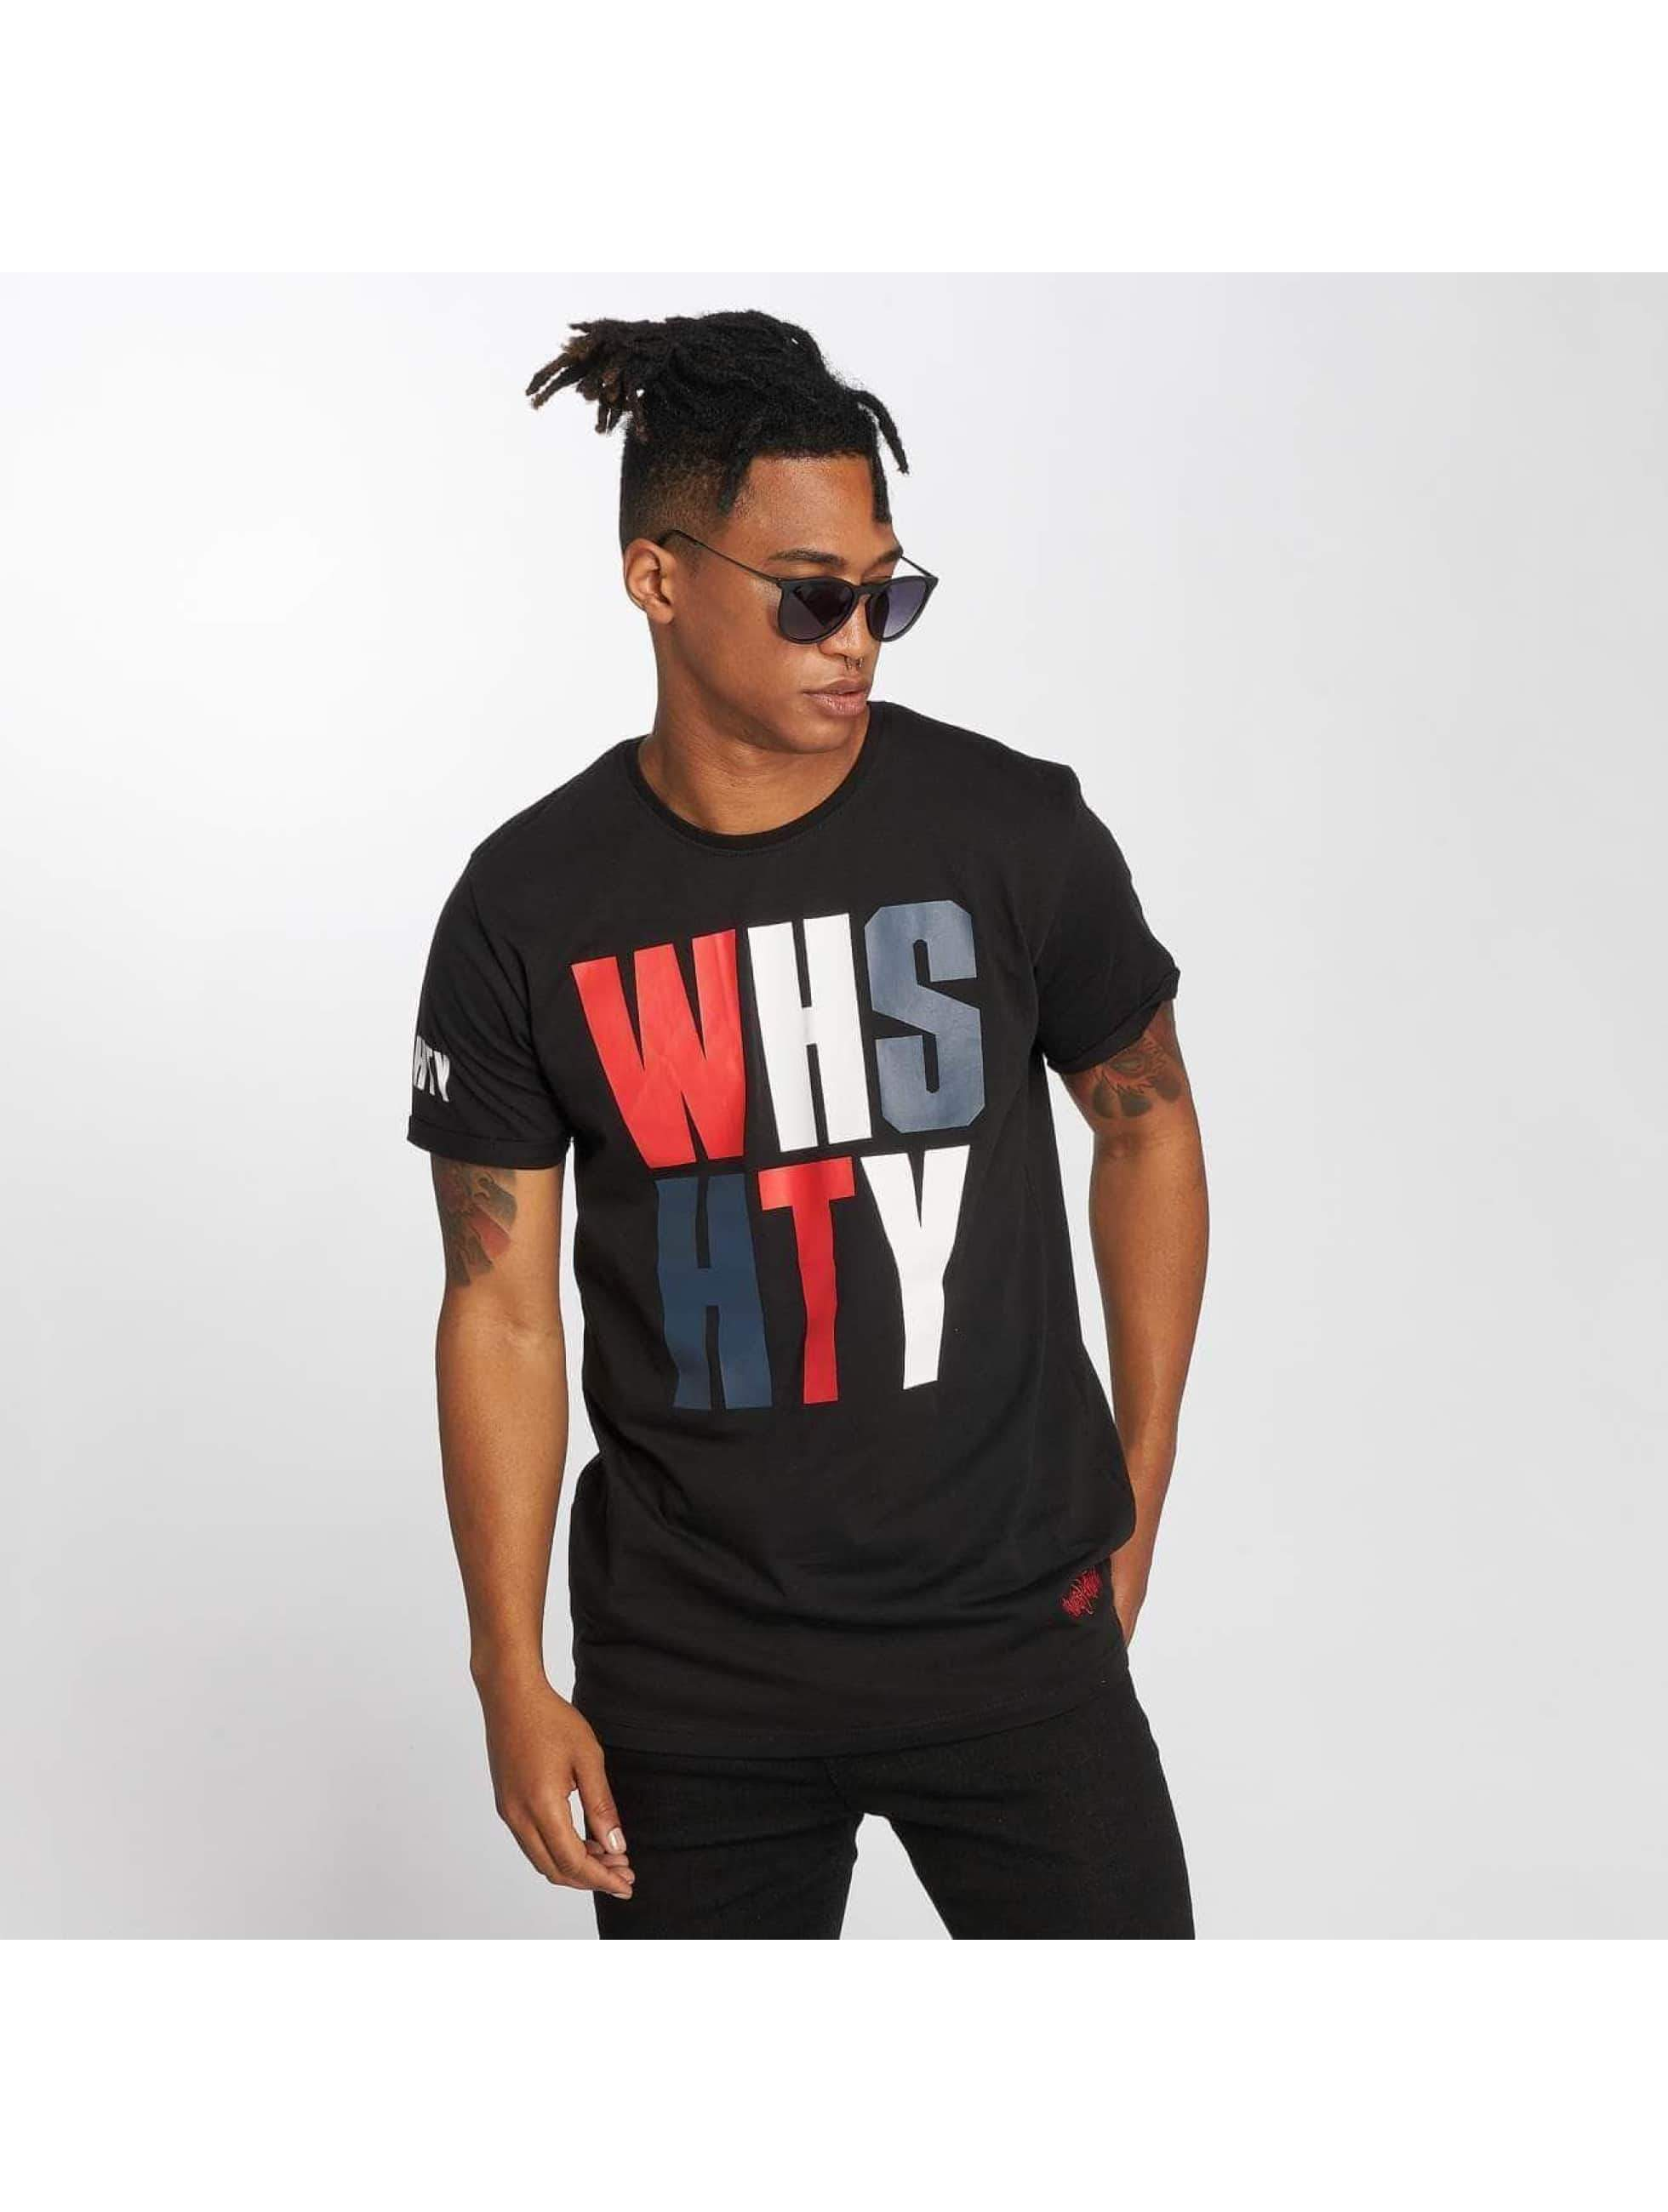 Who Shot Ya? / T-Shirt WHSHTY in black S